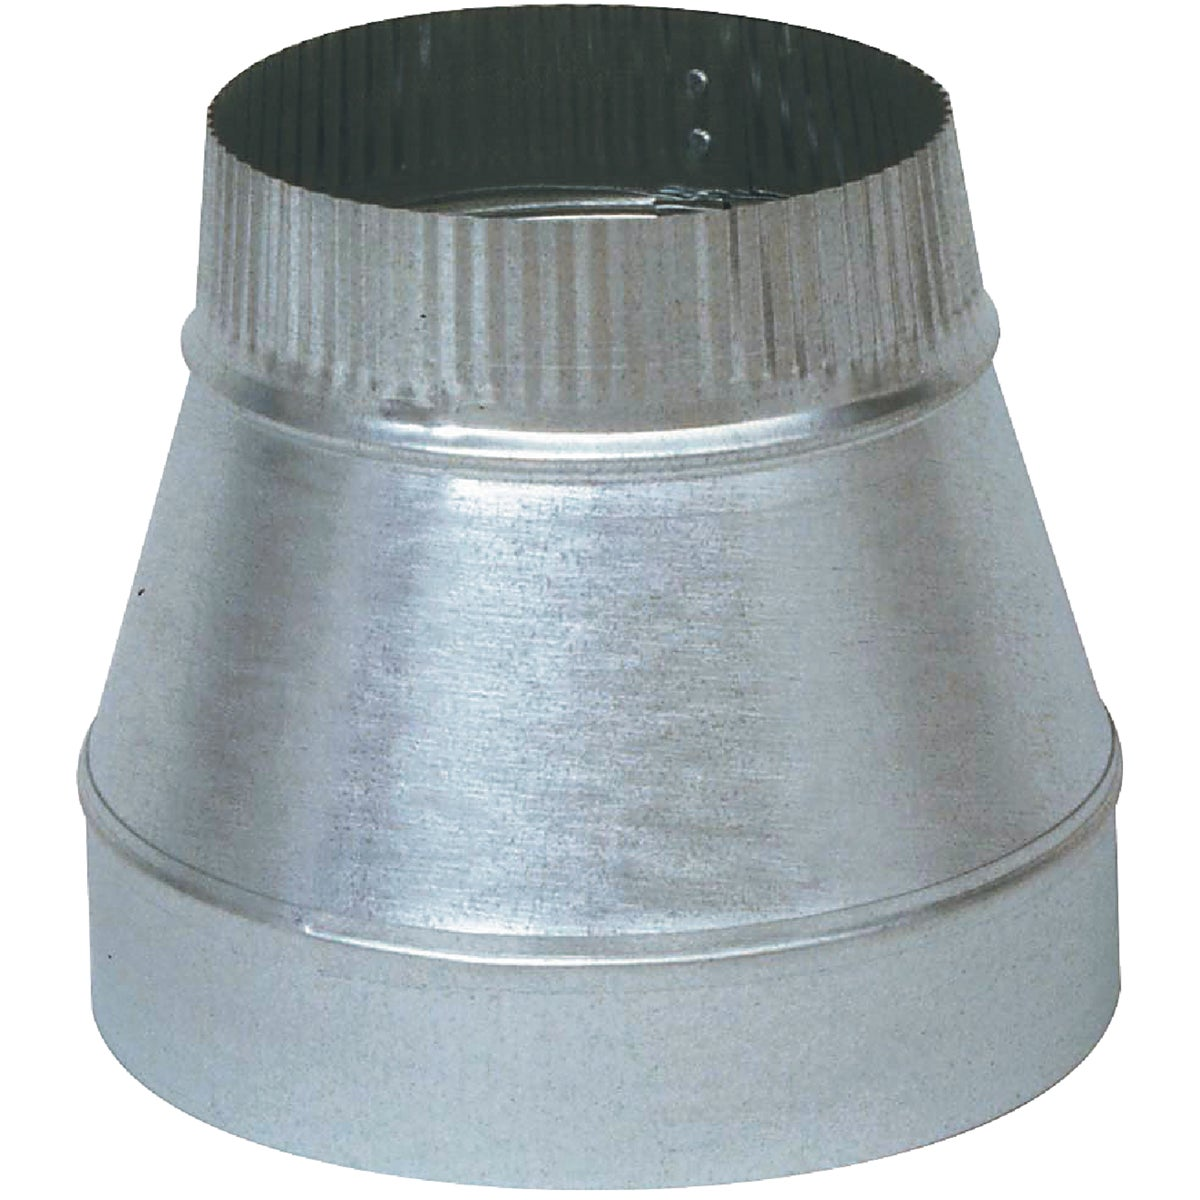 4X3 GALV REDUCER - GV0808-A by Imperial Mfg Group